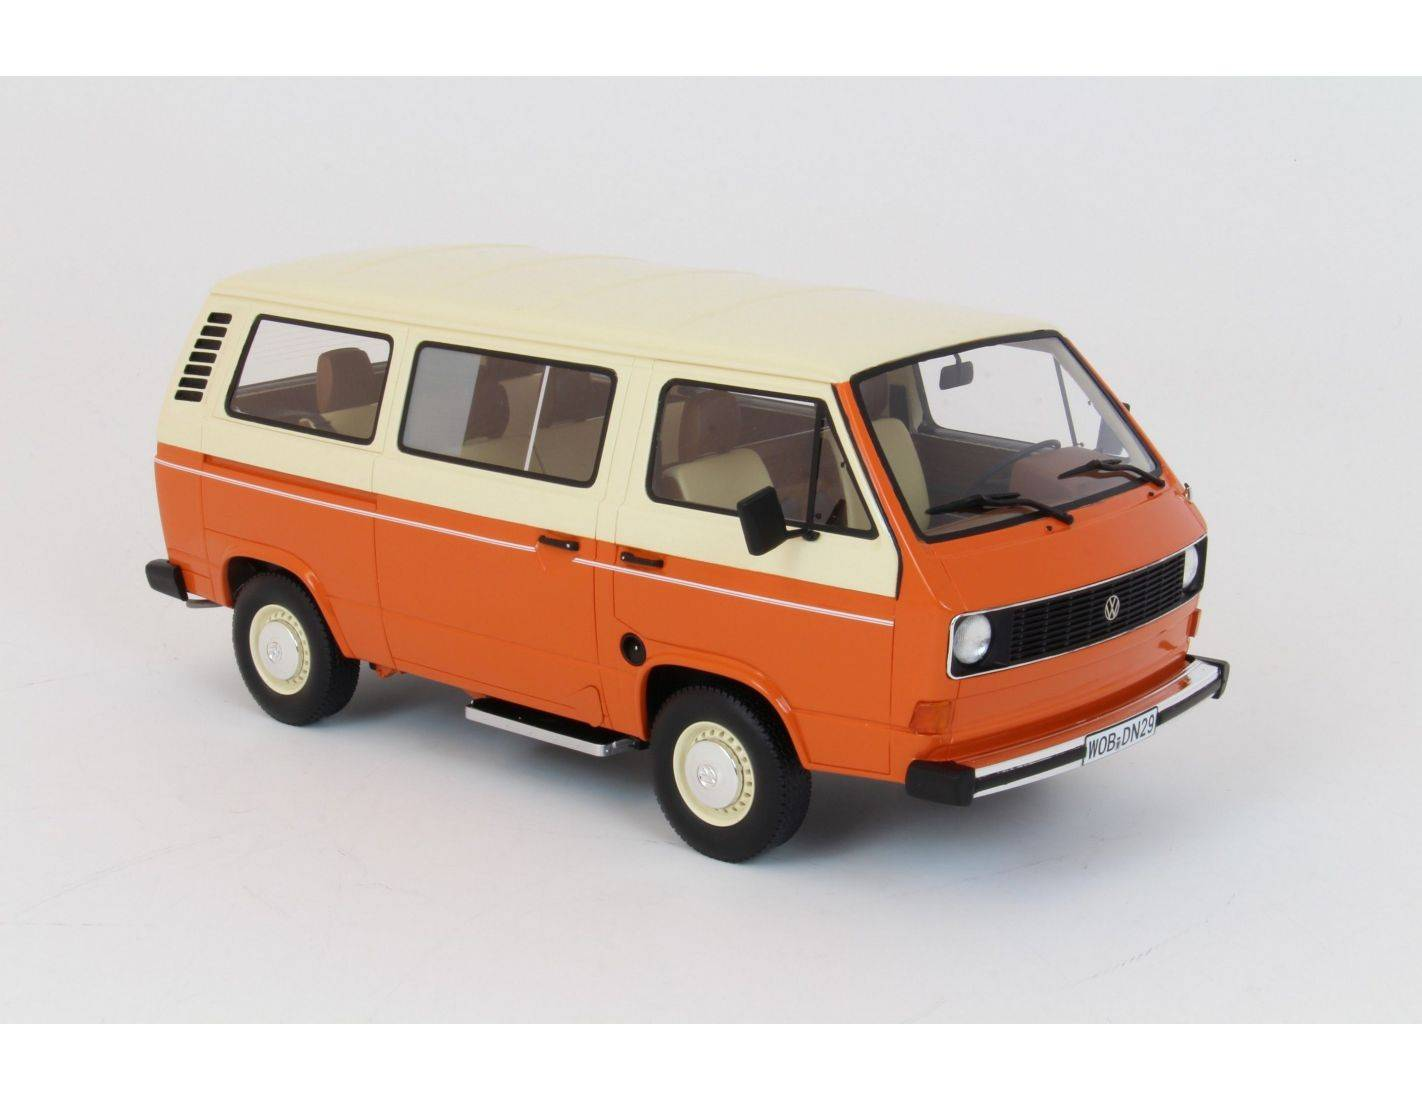 premium classixx prem30025 vw t3 bus 1979 orange beige 1 18 modellino. Black Bedroom Furniture Sets. Home Design Ideas